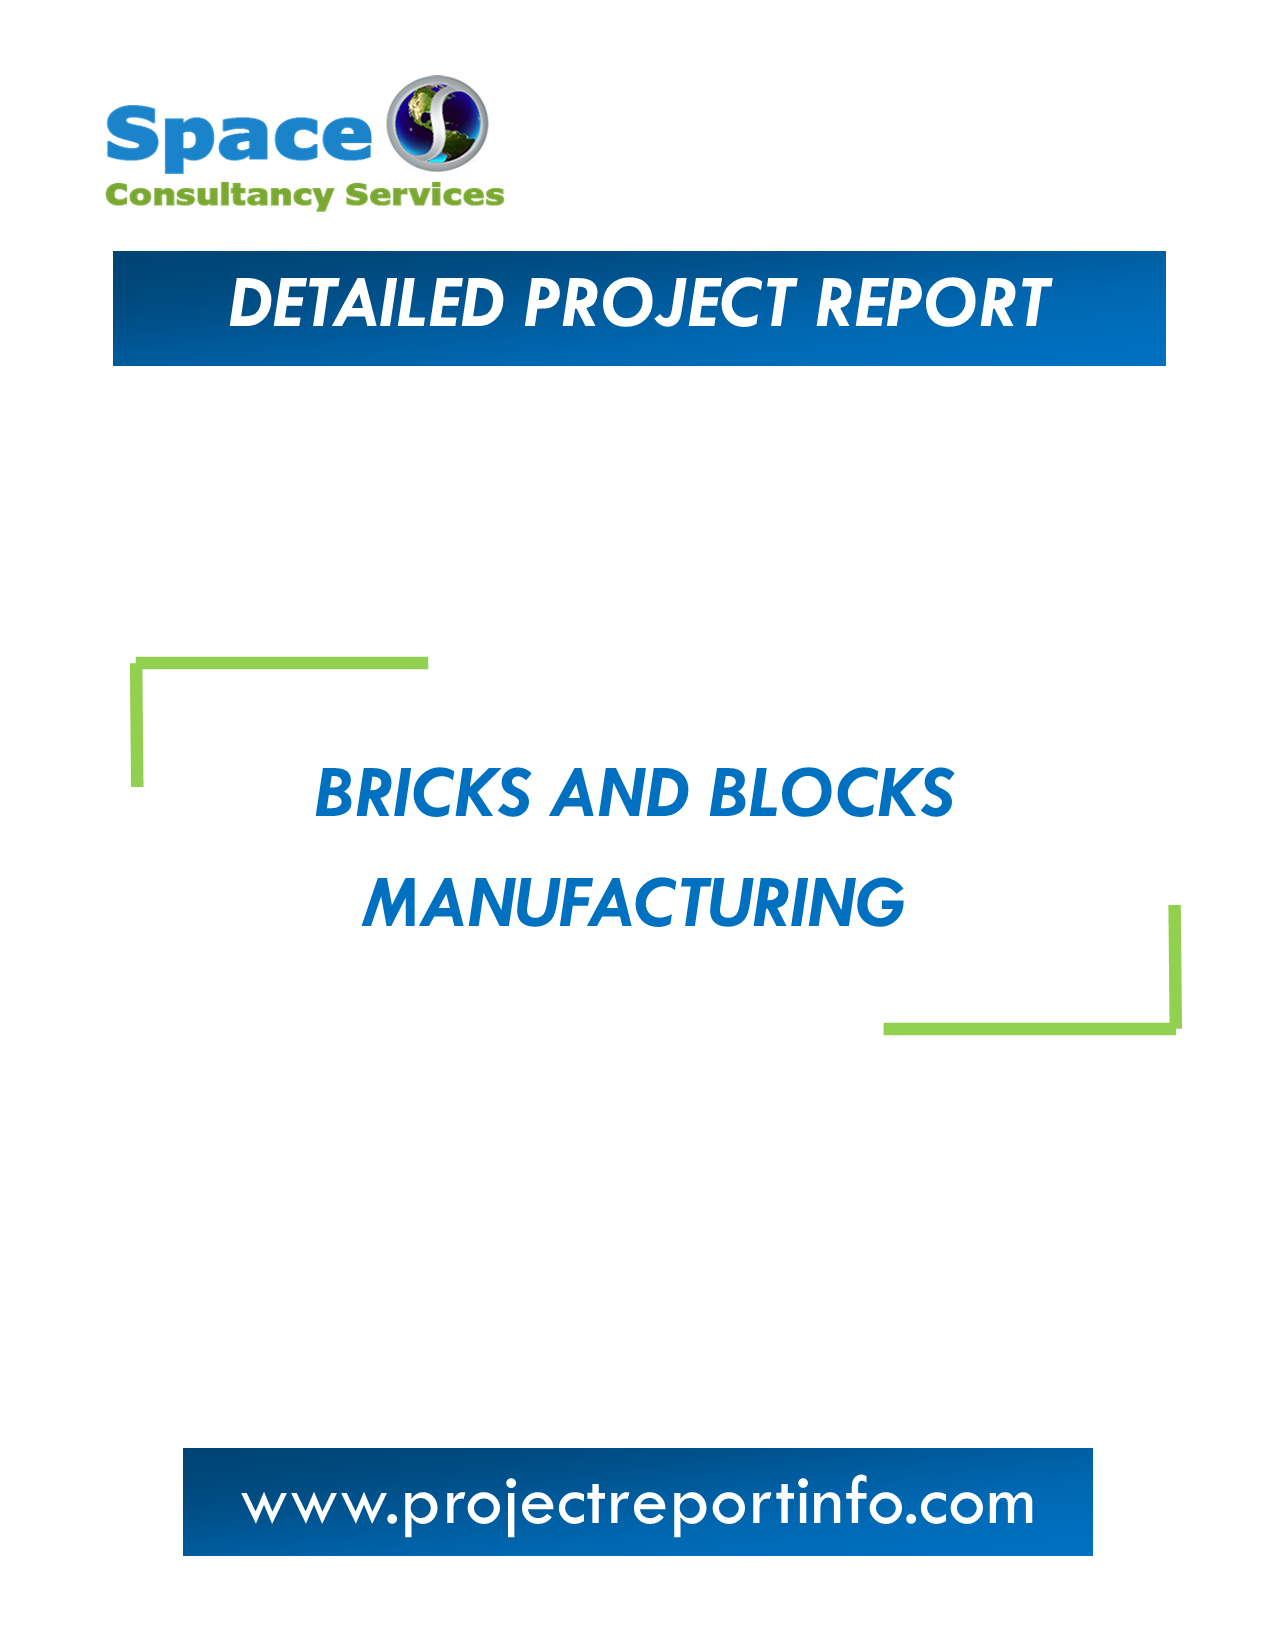 Project Report on Bricks and Blocks Manufacturing